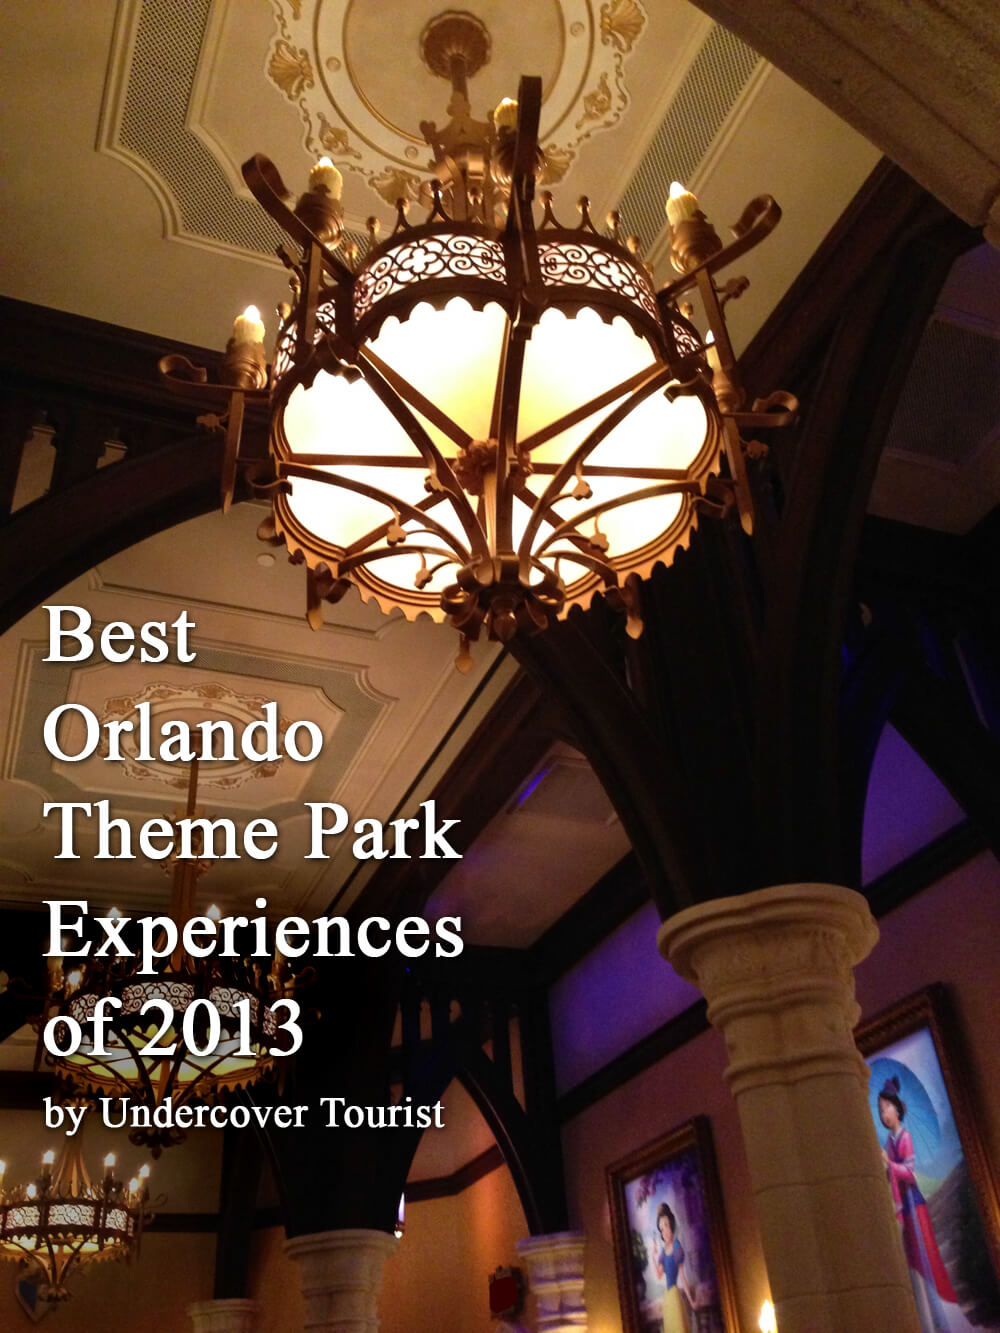 Our Favorite Theme Park Experiences of 2013